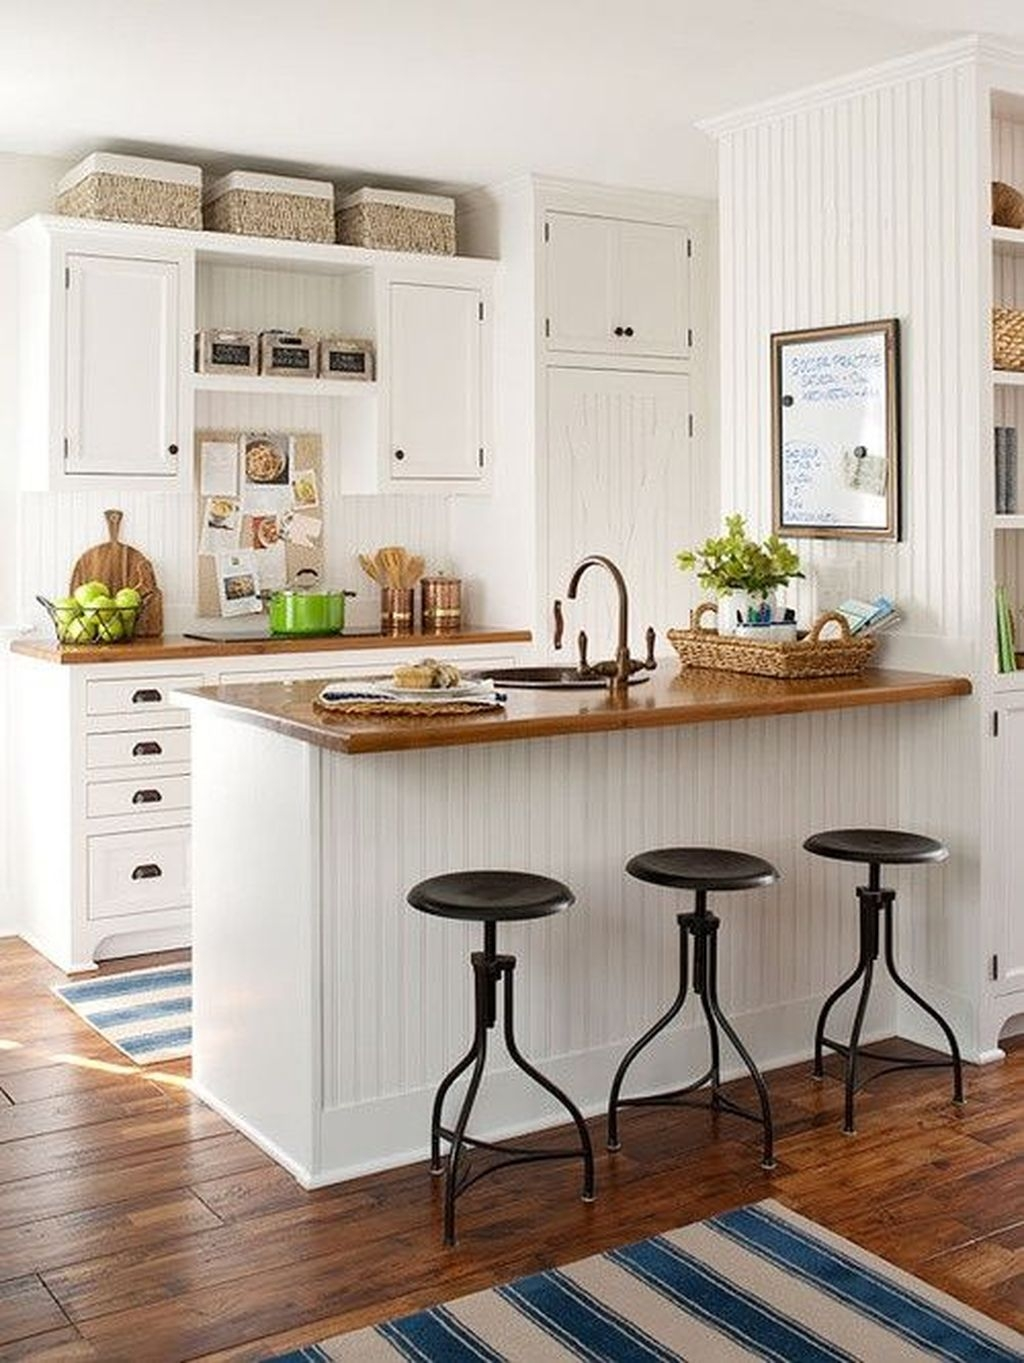 Creative Small Kitchen Design Ideas28